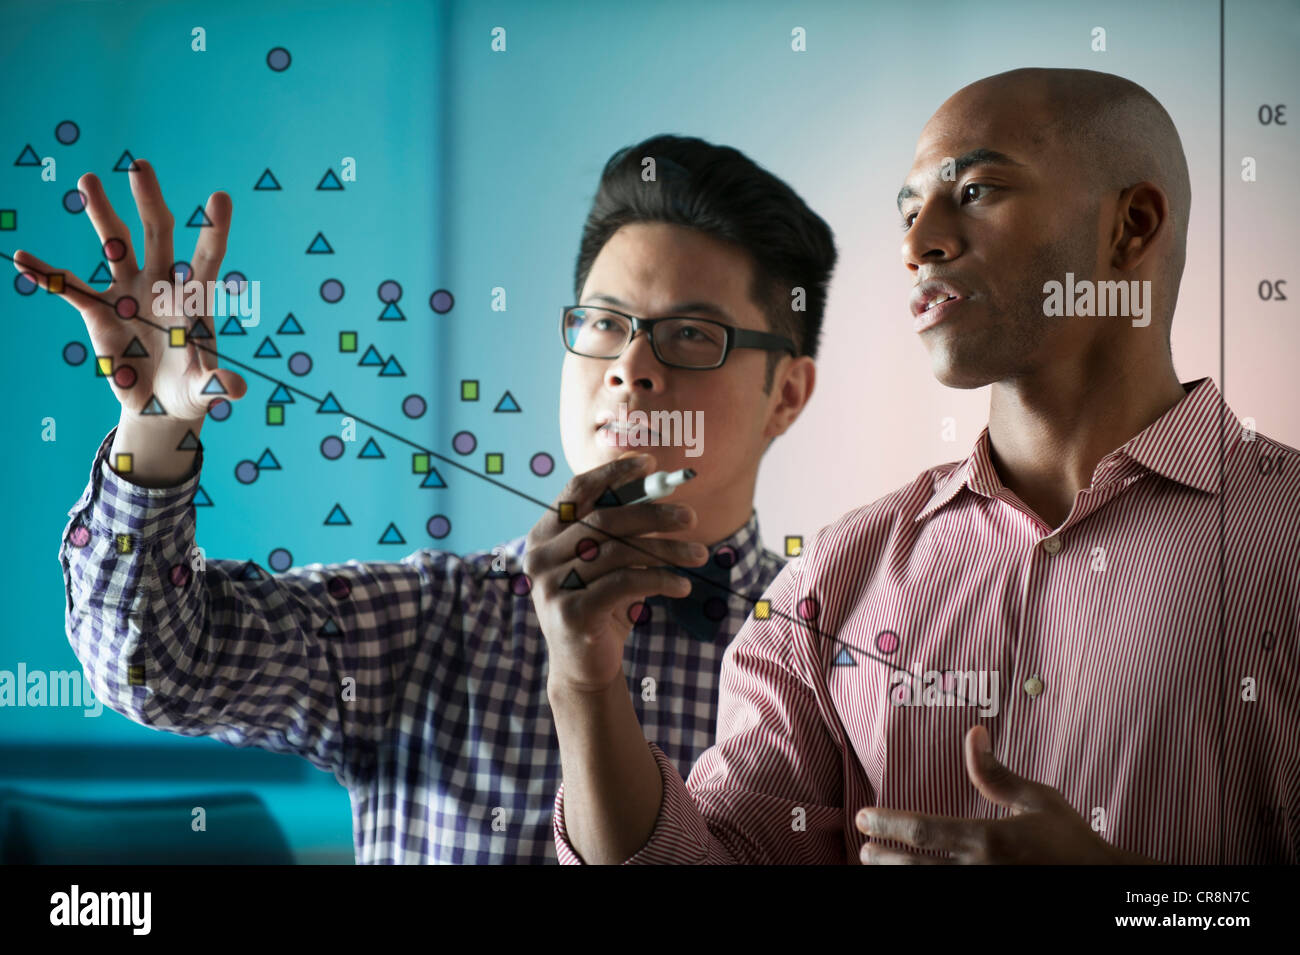 Two people looking at diagram on window - Stock Image